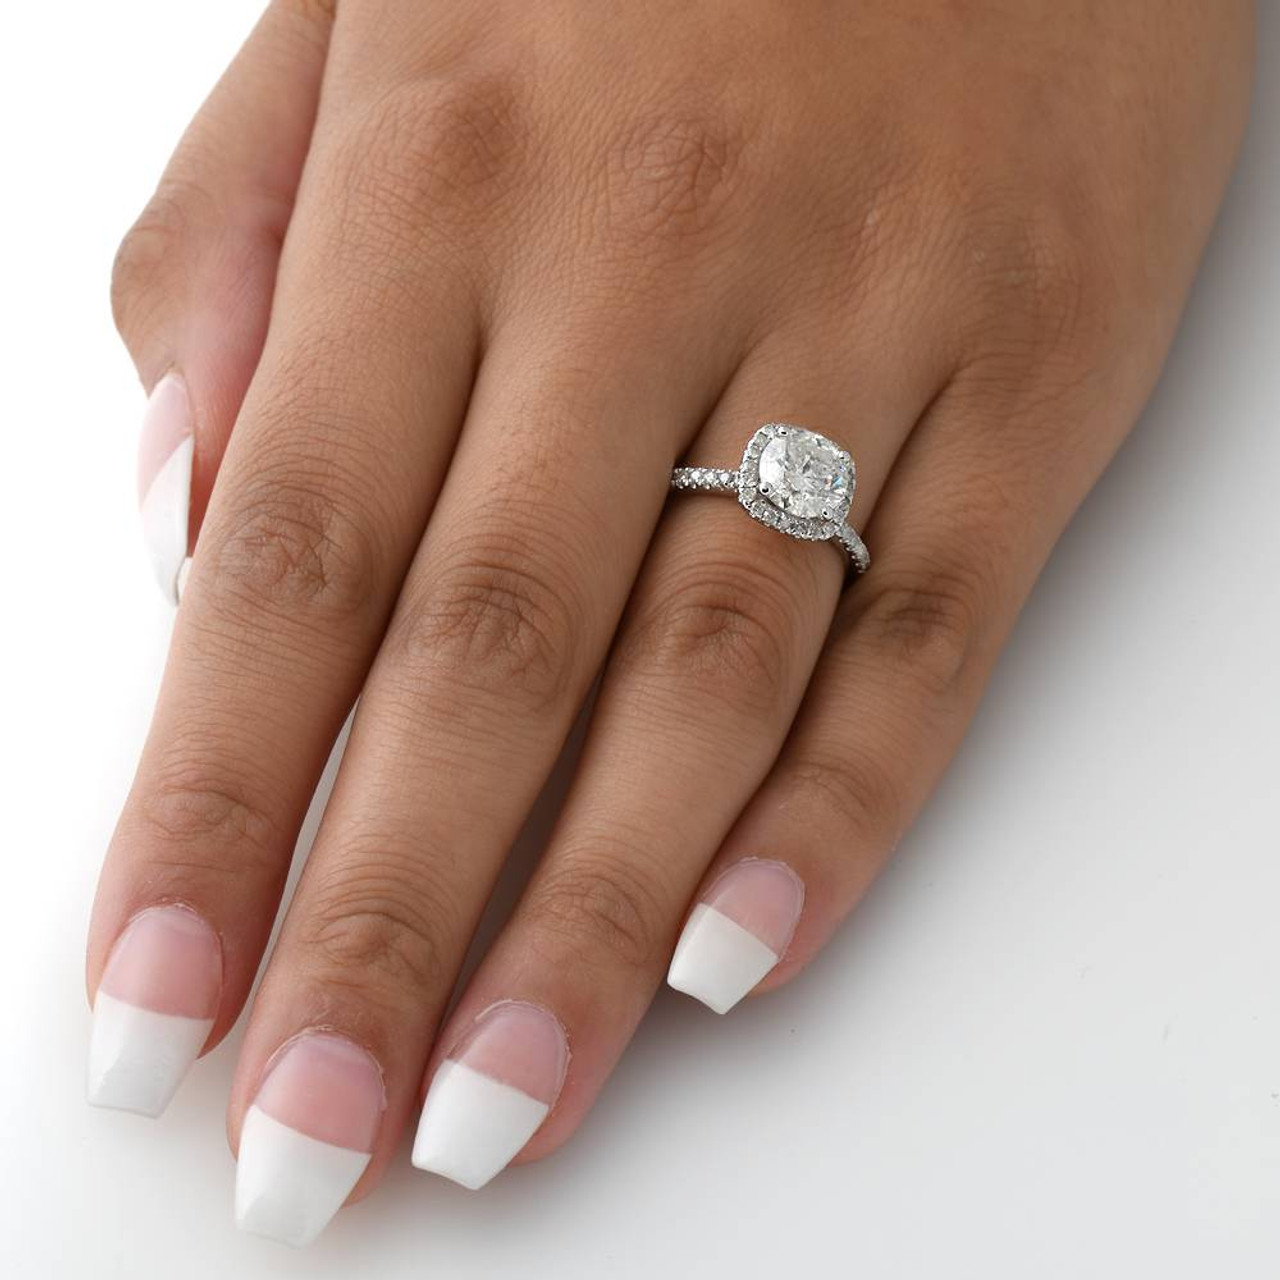 rings ring beers engagement cut de platinum solitaire cushion aura